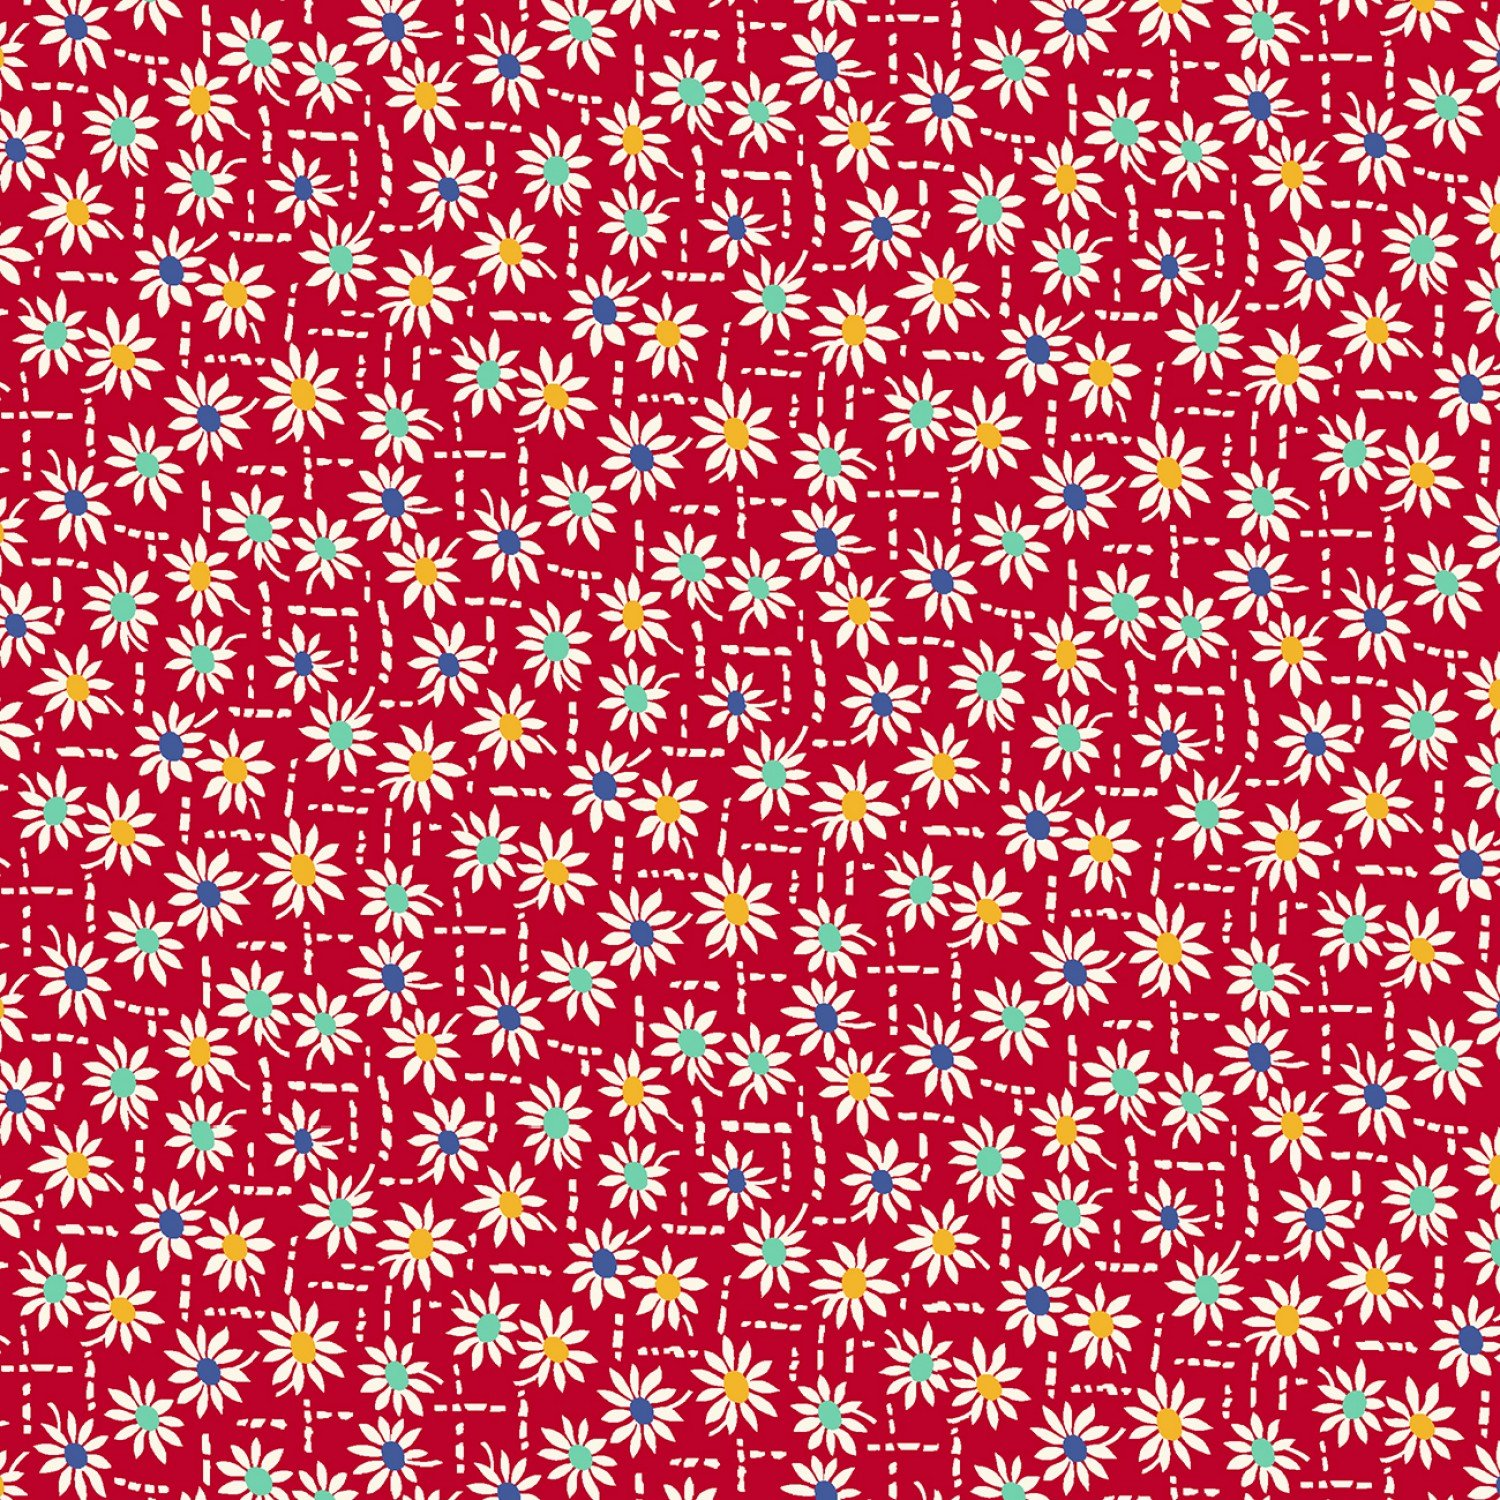 MF-Aunt Grace's Apron (1930's Reproduction) 0758-0111 Red - Daisy Stitch